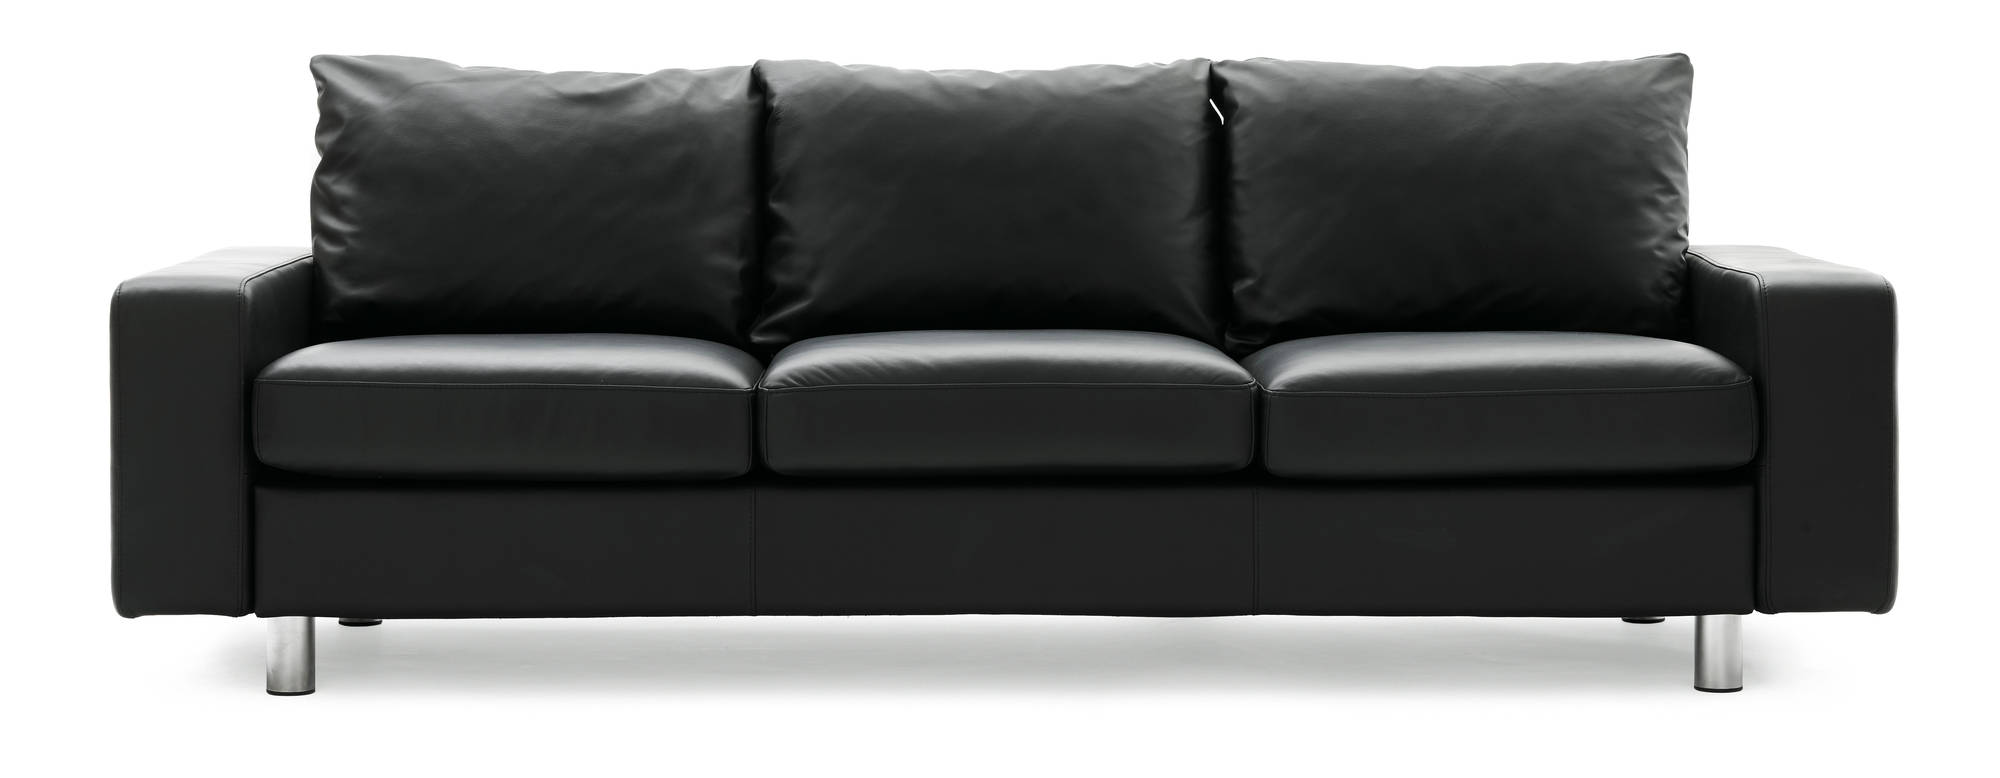 E200 Stressless Sofa shown in Black Paloma- Saves 20% instantly.